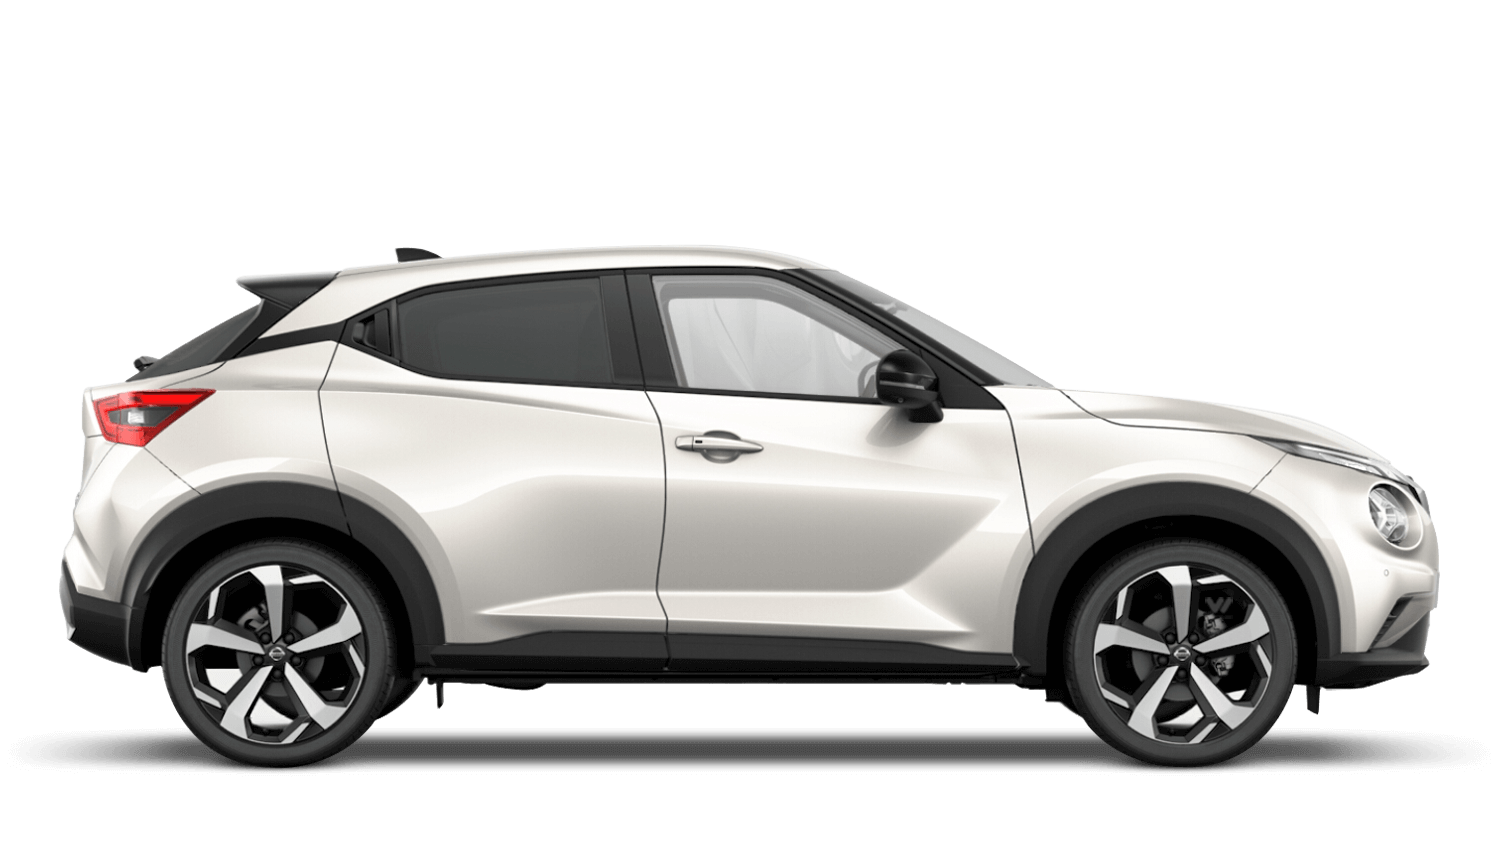 Storm White Next Generation Nissan Juke